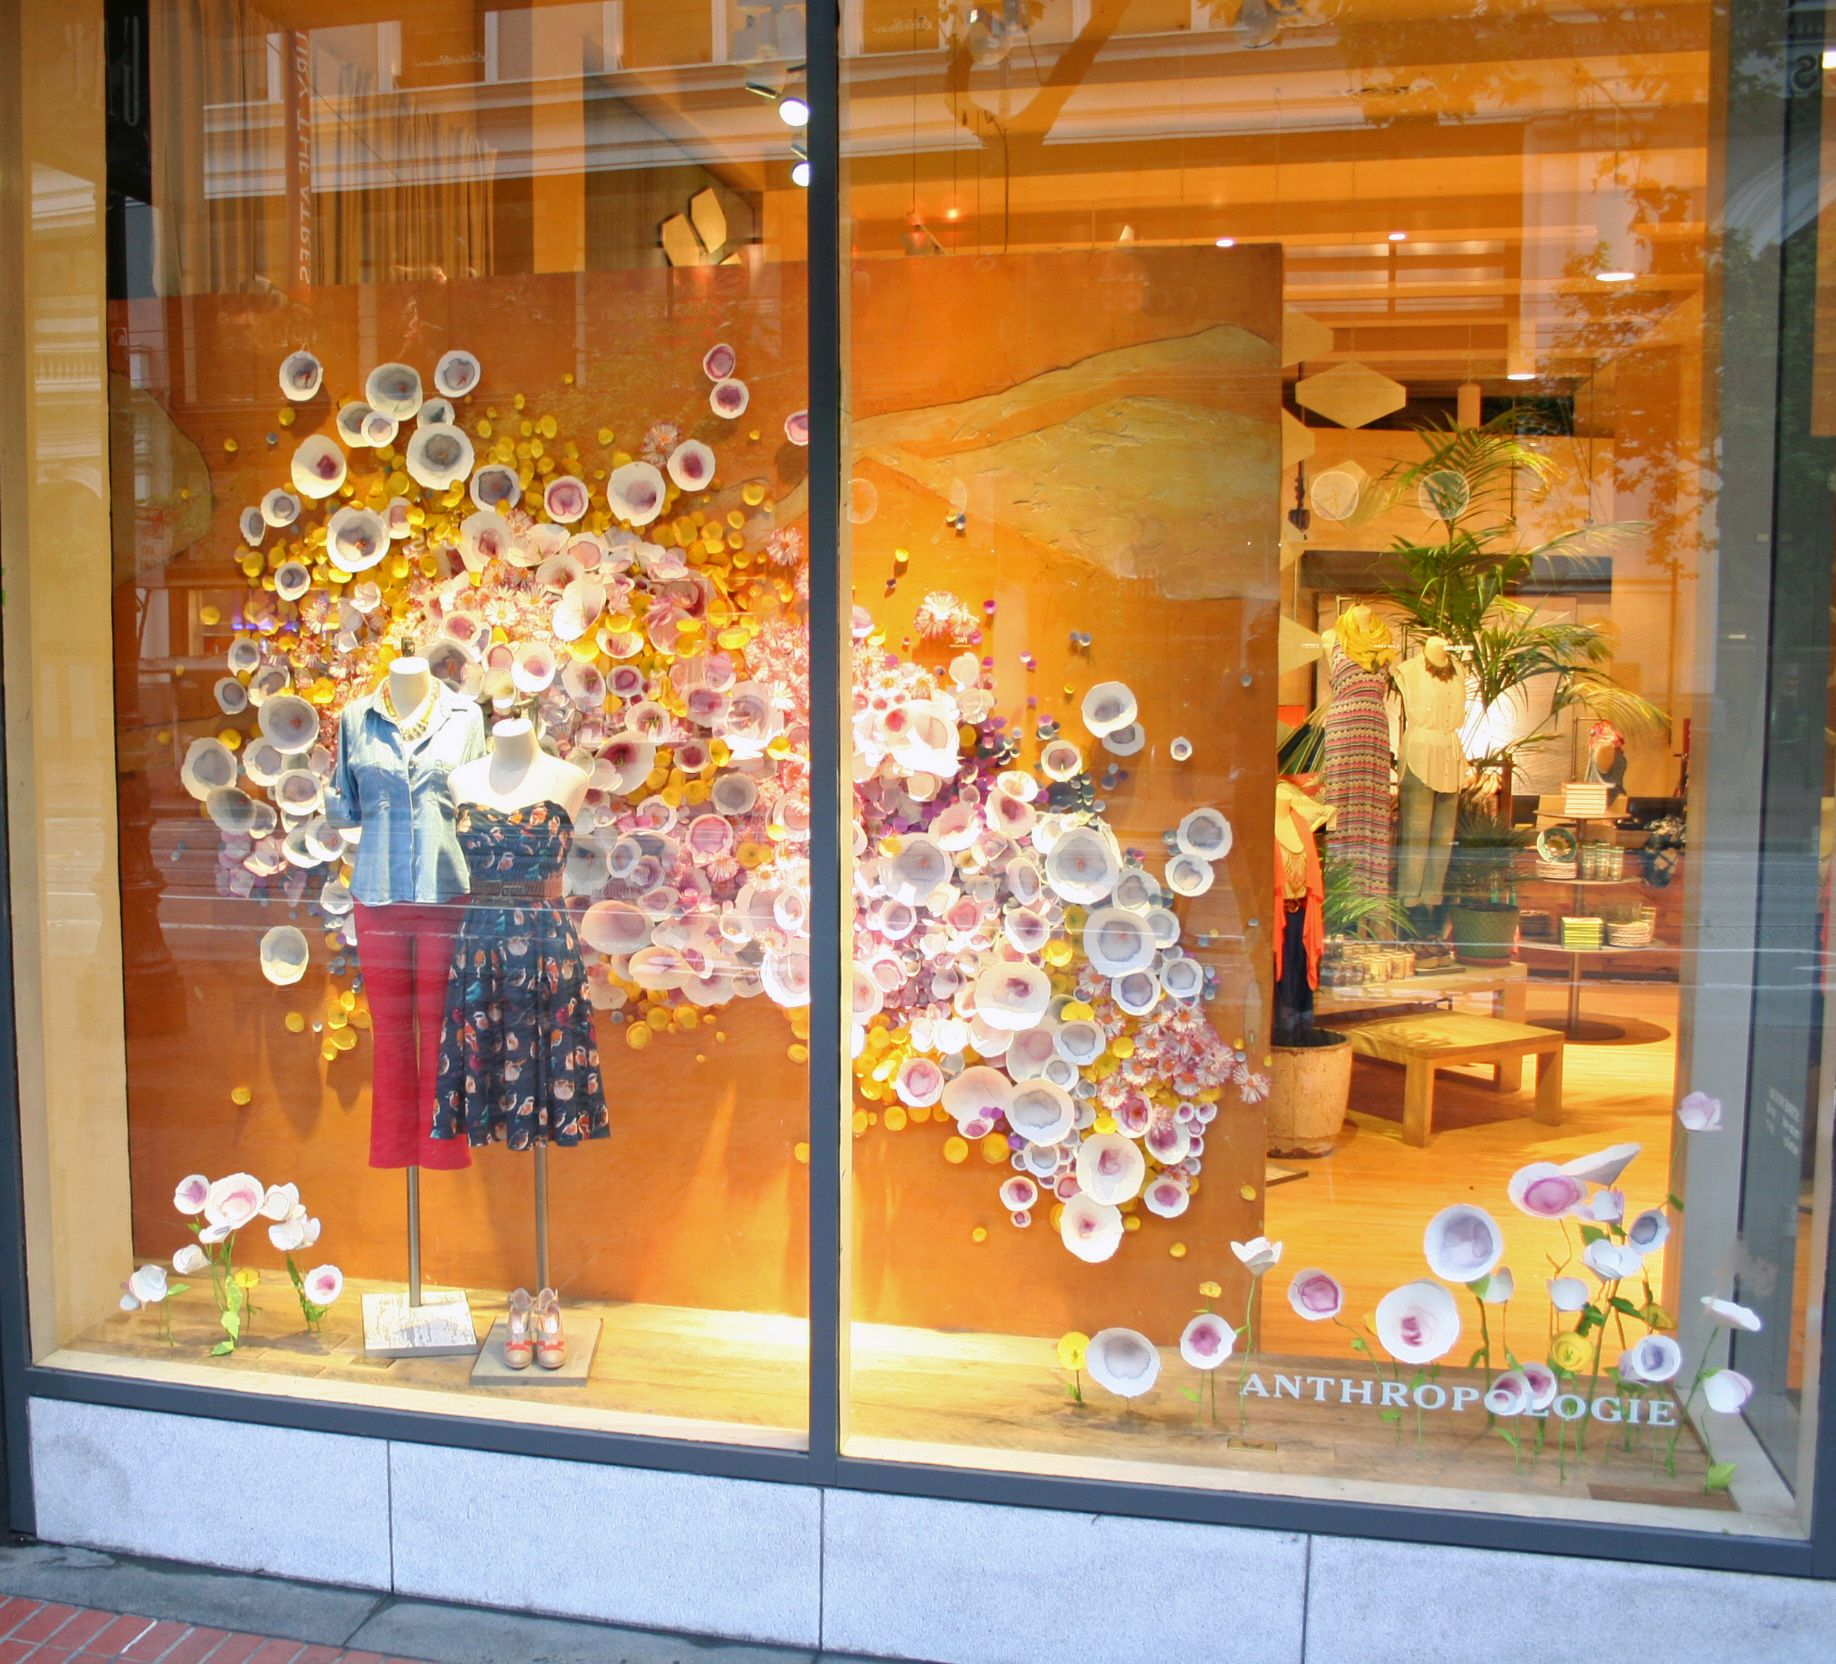 Sanfrancisco anthropologie flower crafts pinterest for Anthropologie store decoration ideas